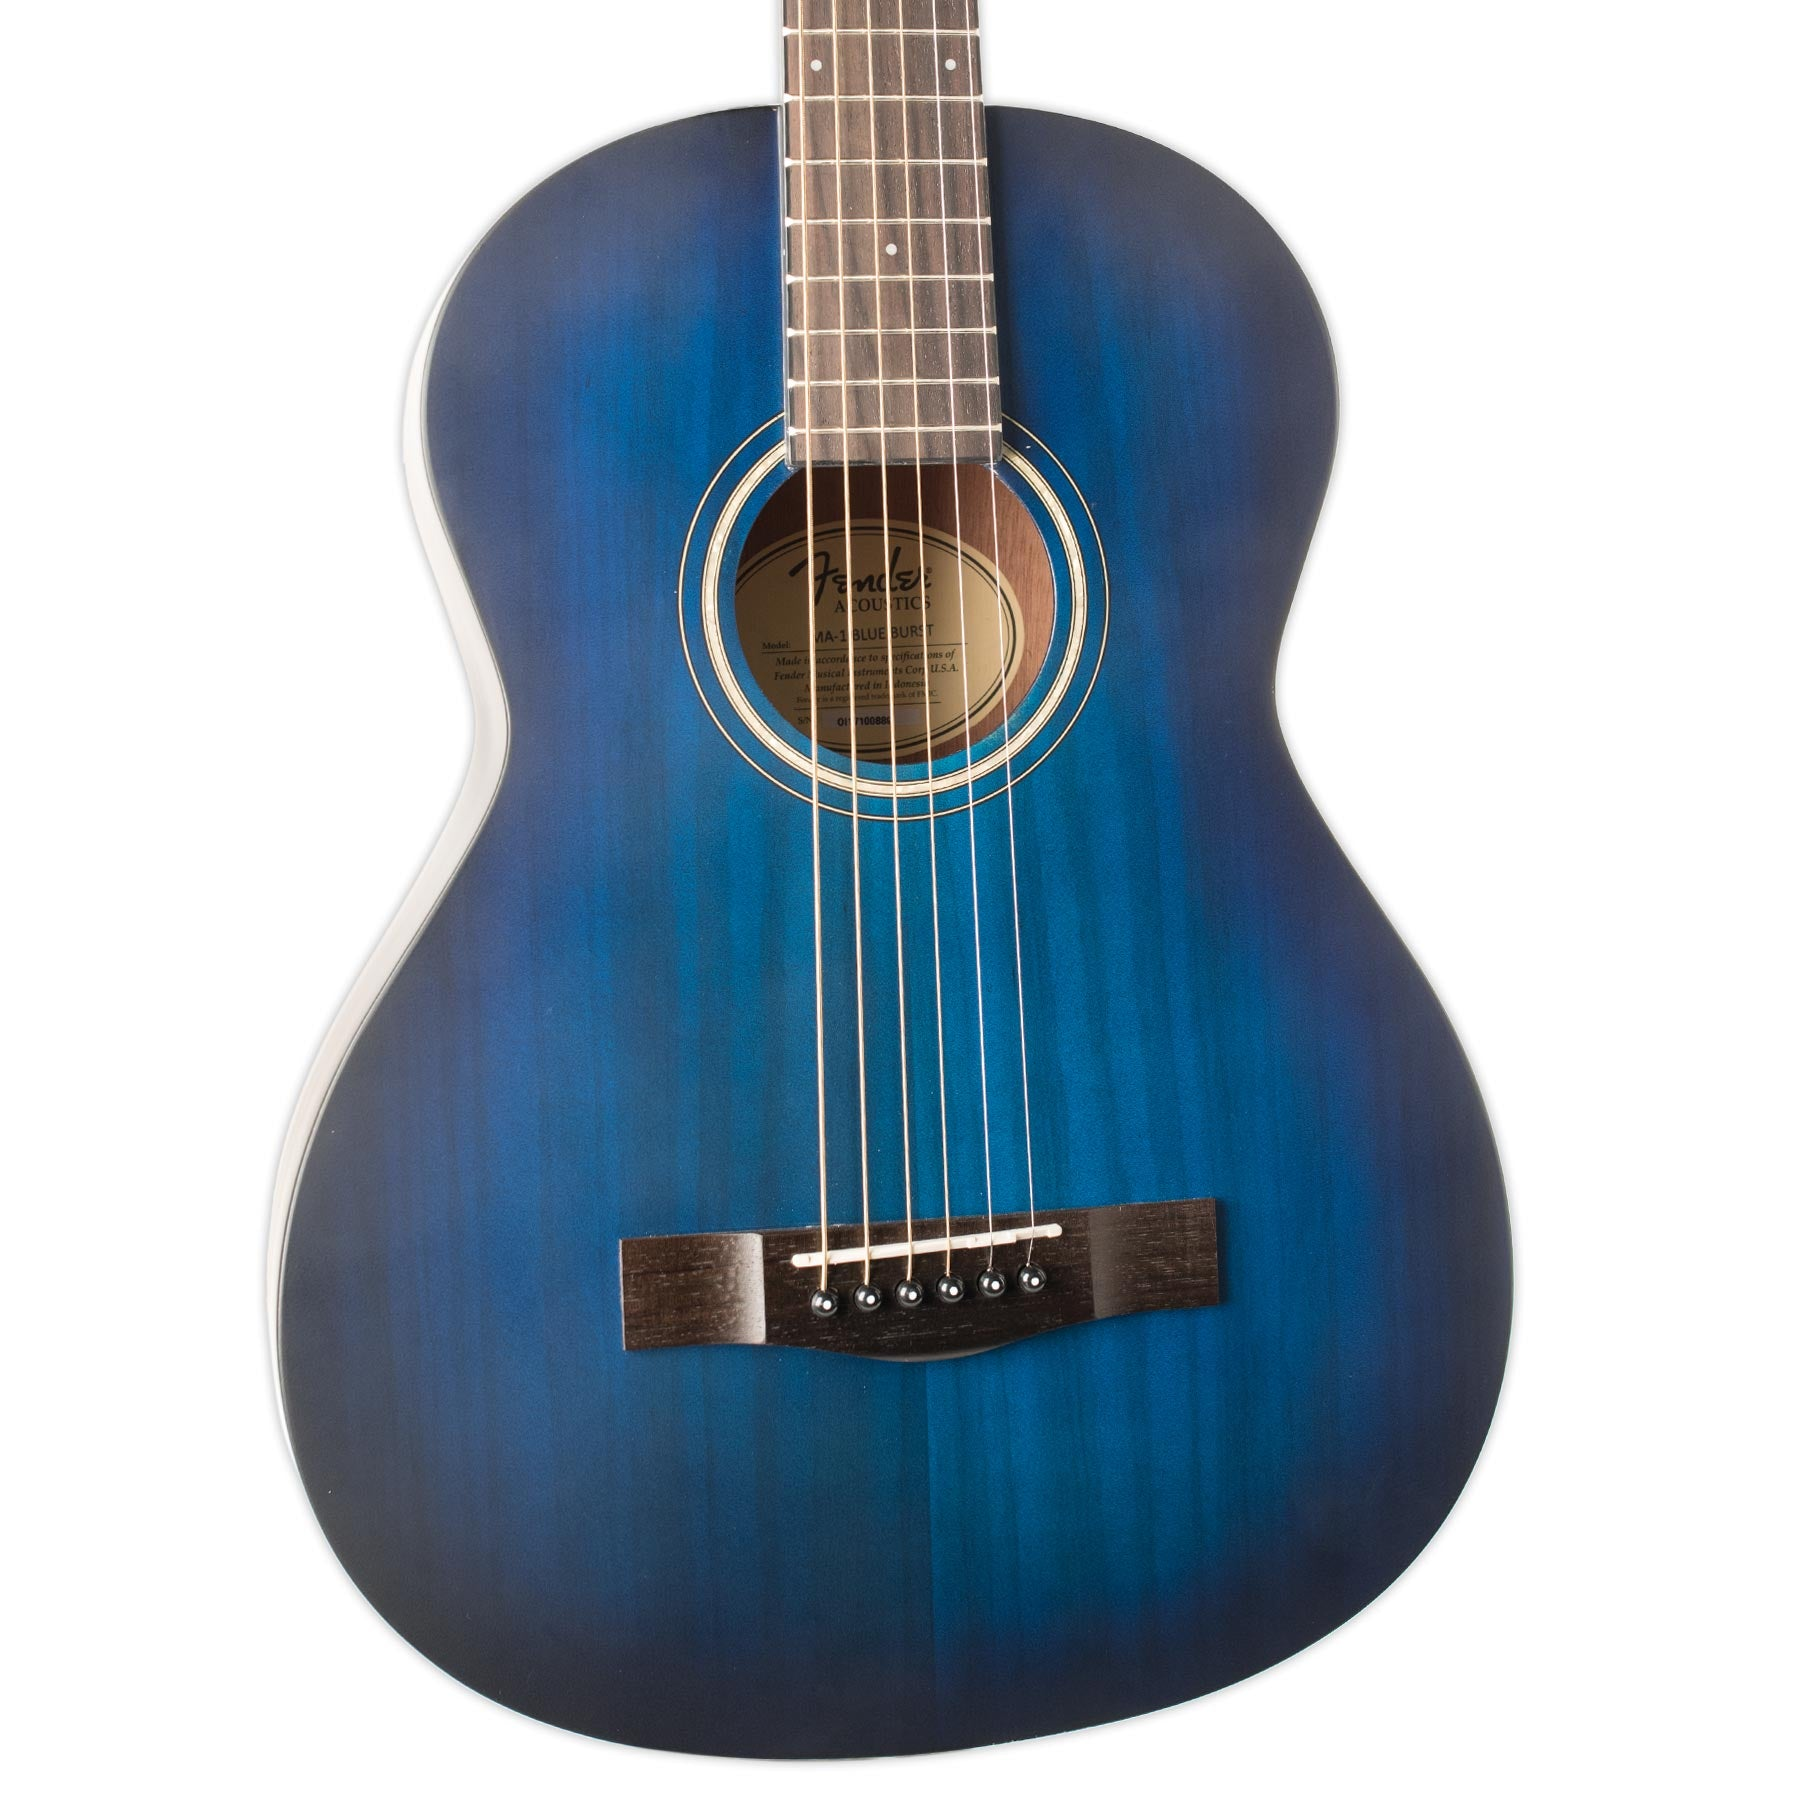 FENDER MA 1 3 4 SIZE ACOUSTIC STEEL STRING GUITAR BLUE BURST